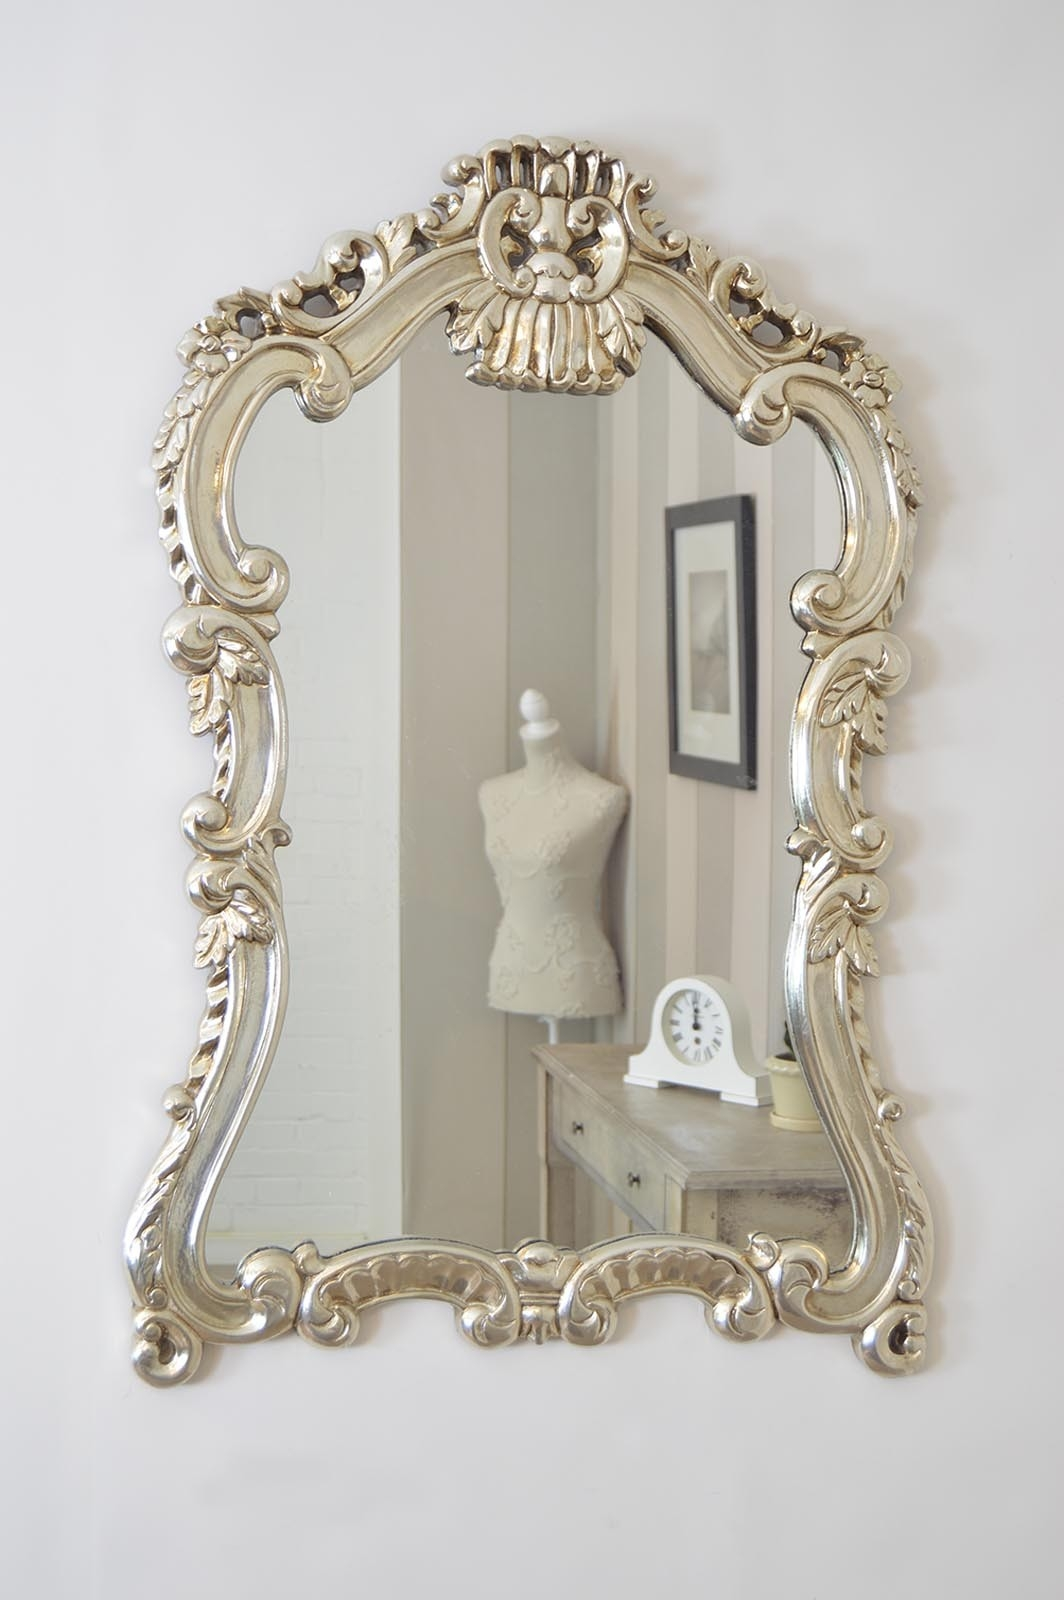 3ft6 X 2ft8 115cm X 82cm Large Silver Baroque Style Ornate Big Within Silver Baroque Mirror (Image 1 of 15)